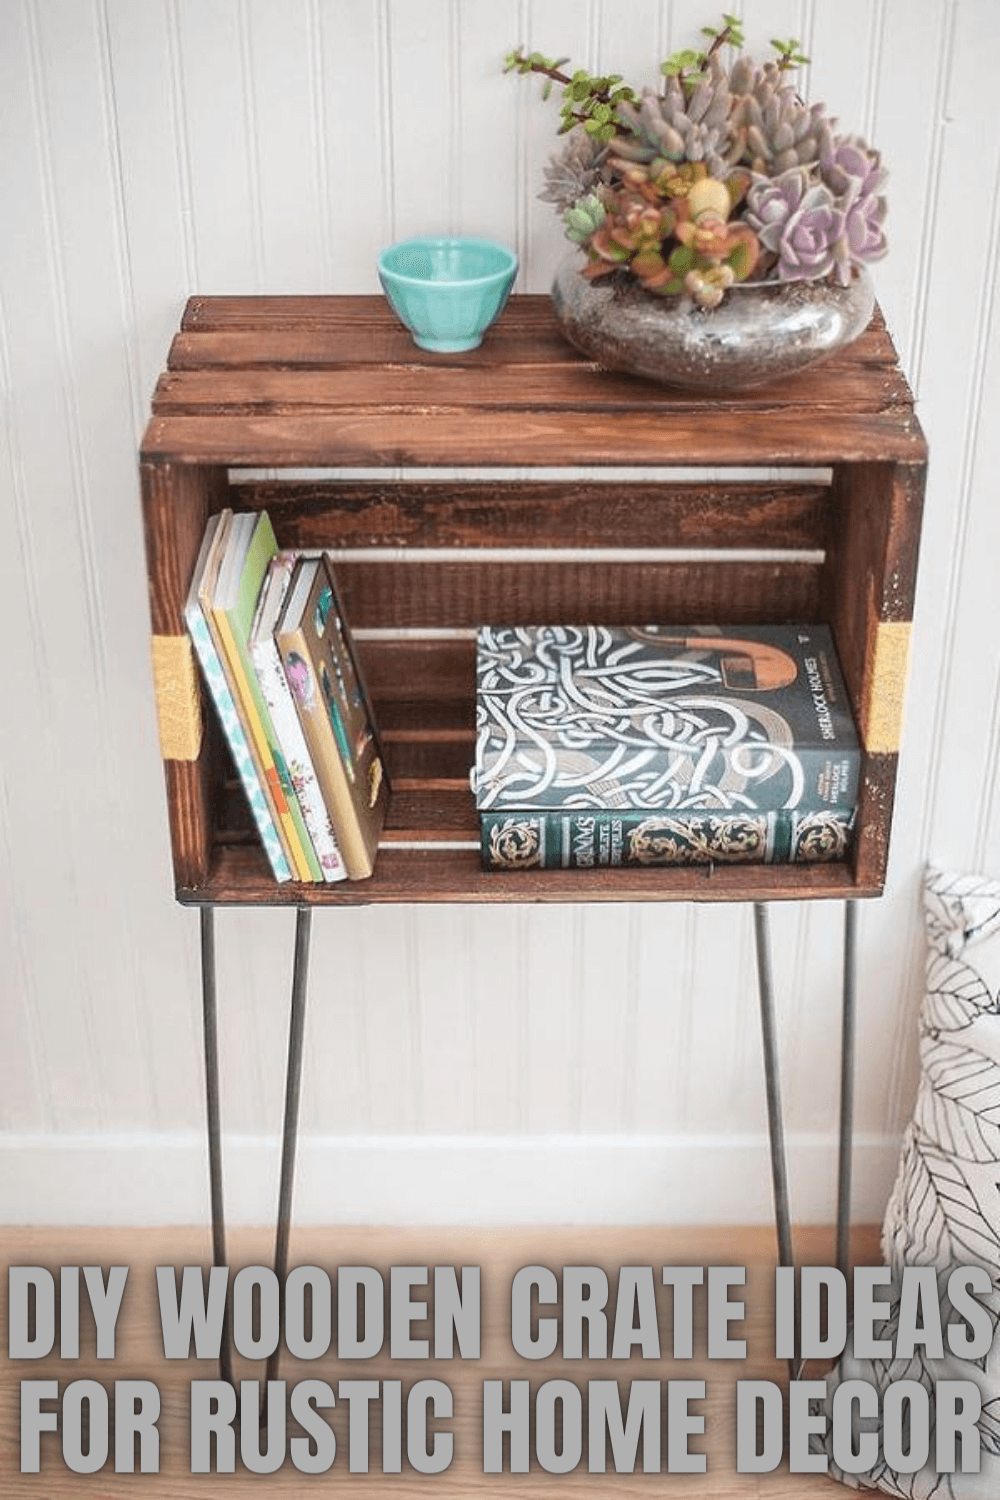 DIY WOODEN CRATE IDEAS FOR RUSTIC HOME DECOR